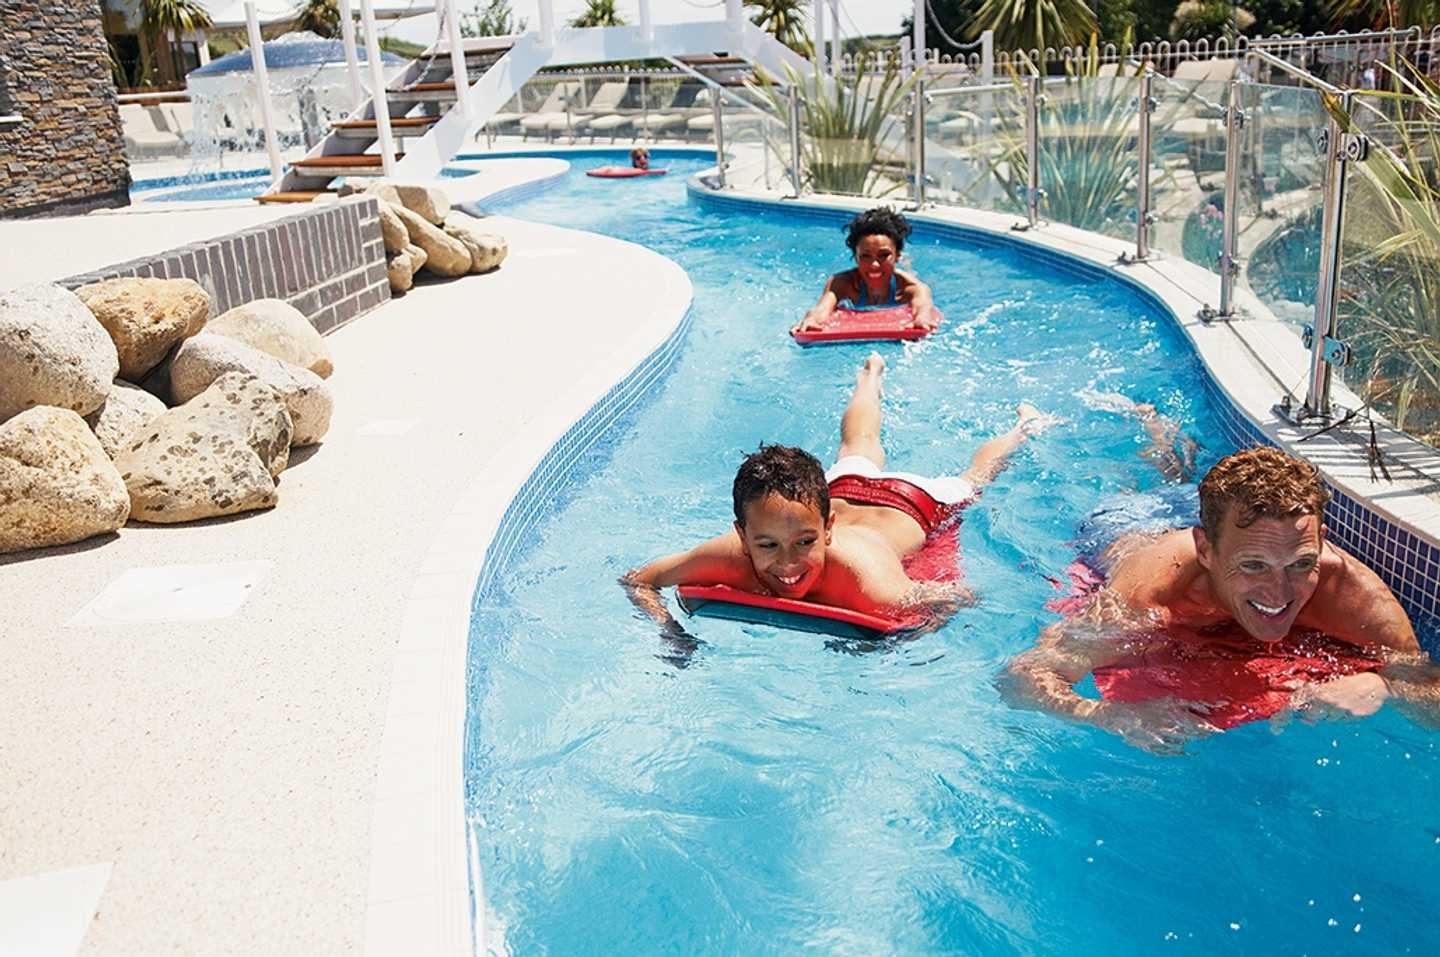 Children enjoying a swim in the lazy river